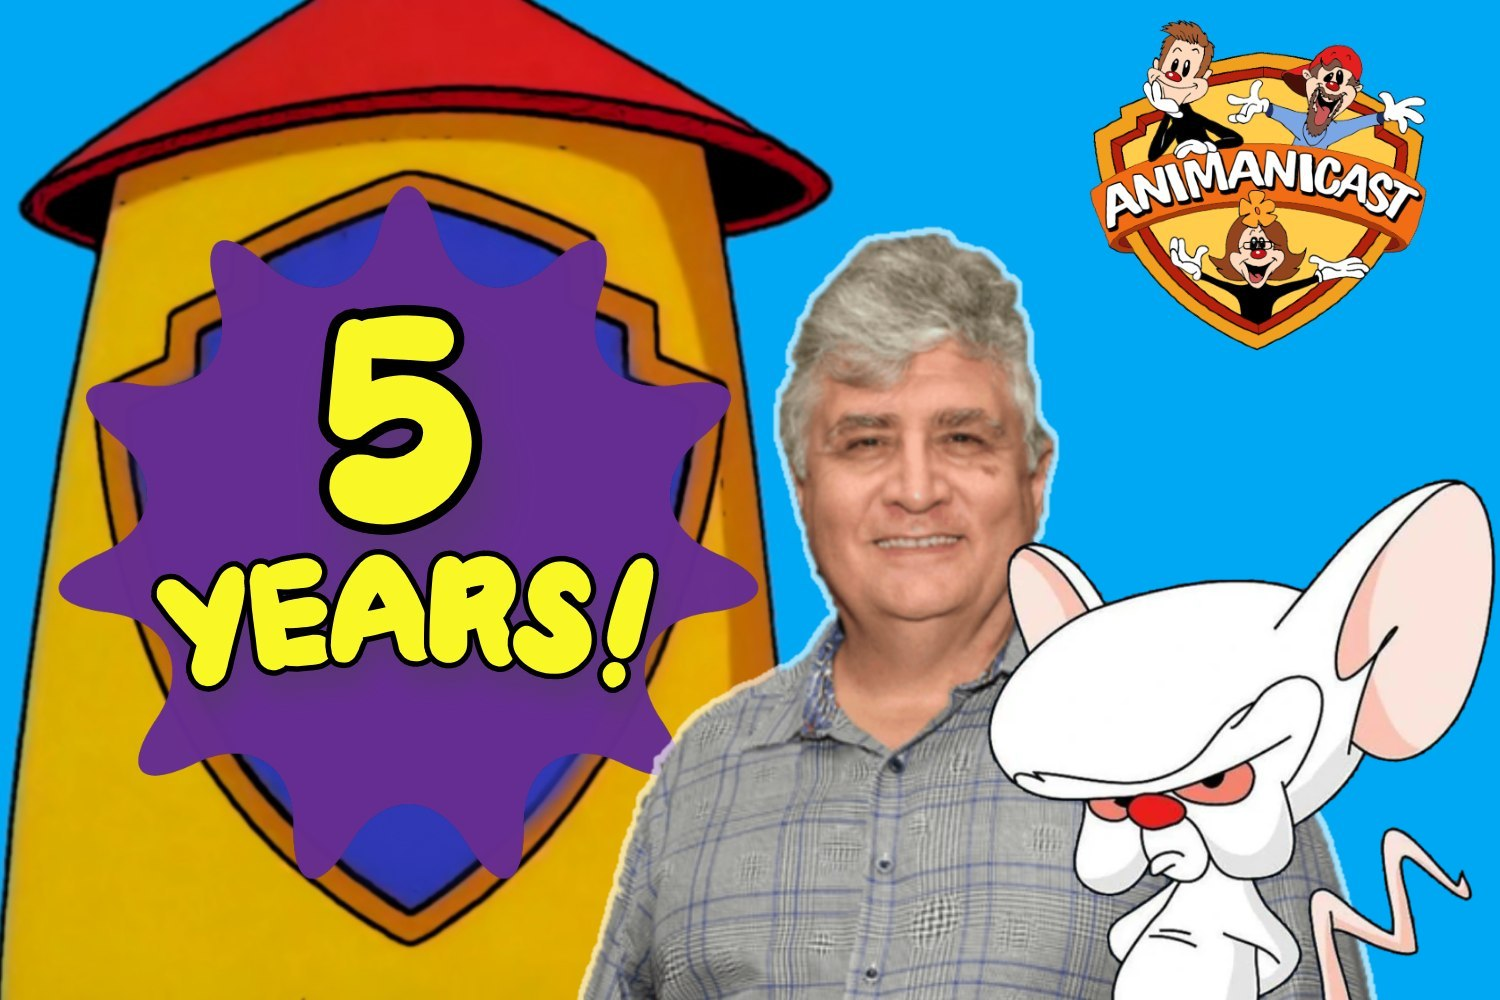 Animanicast 217- Our 5th Anniversary with Maurice LaMarche and Tom Ruegger